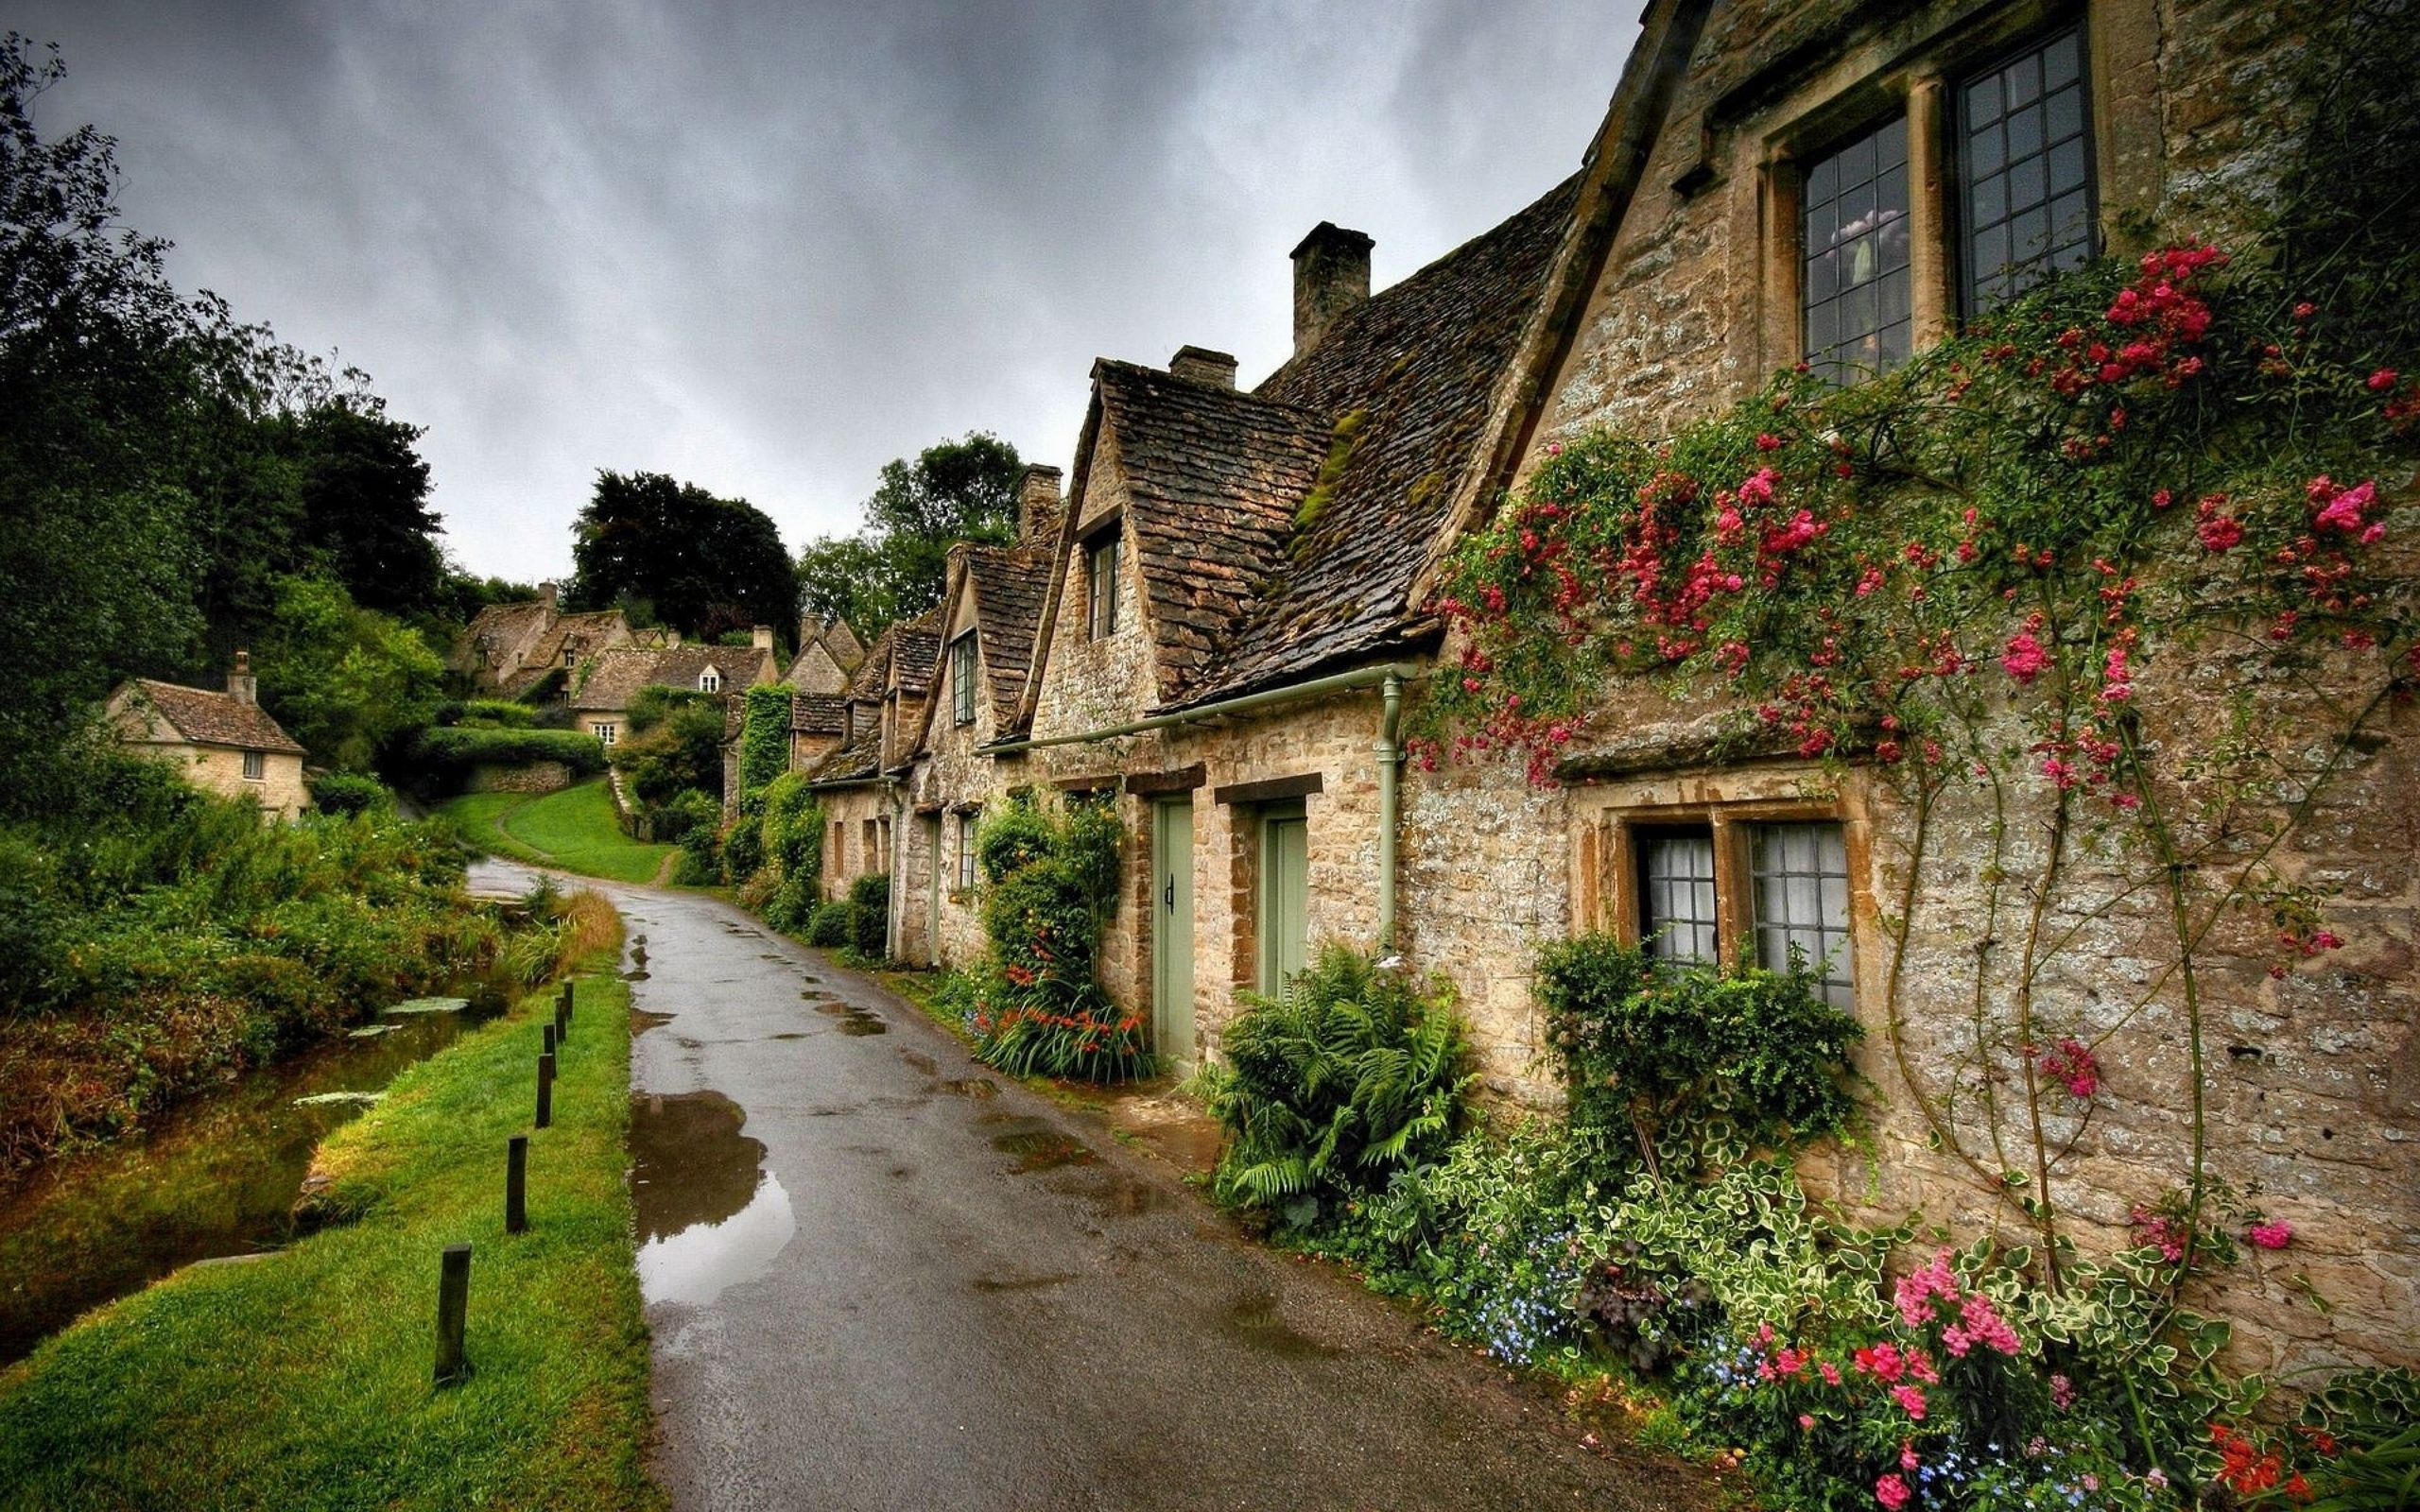 Bibury England Village Landscape Wallpapers Hd Free Hd Wallpaper